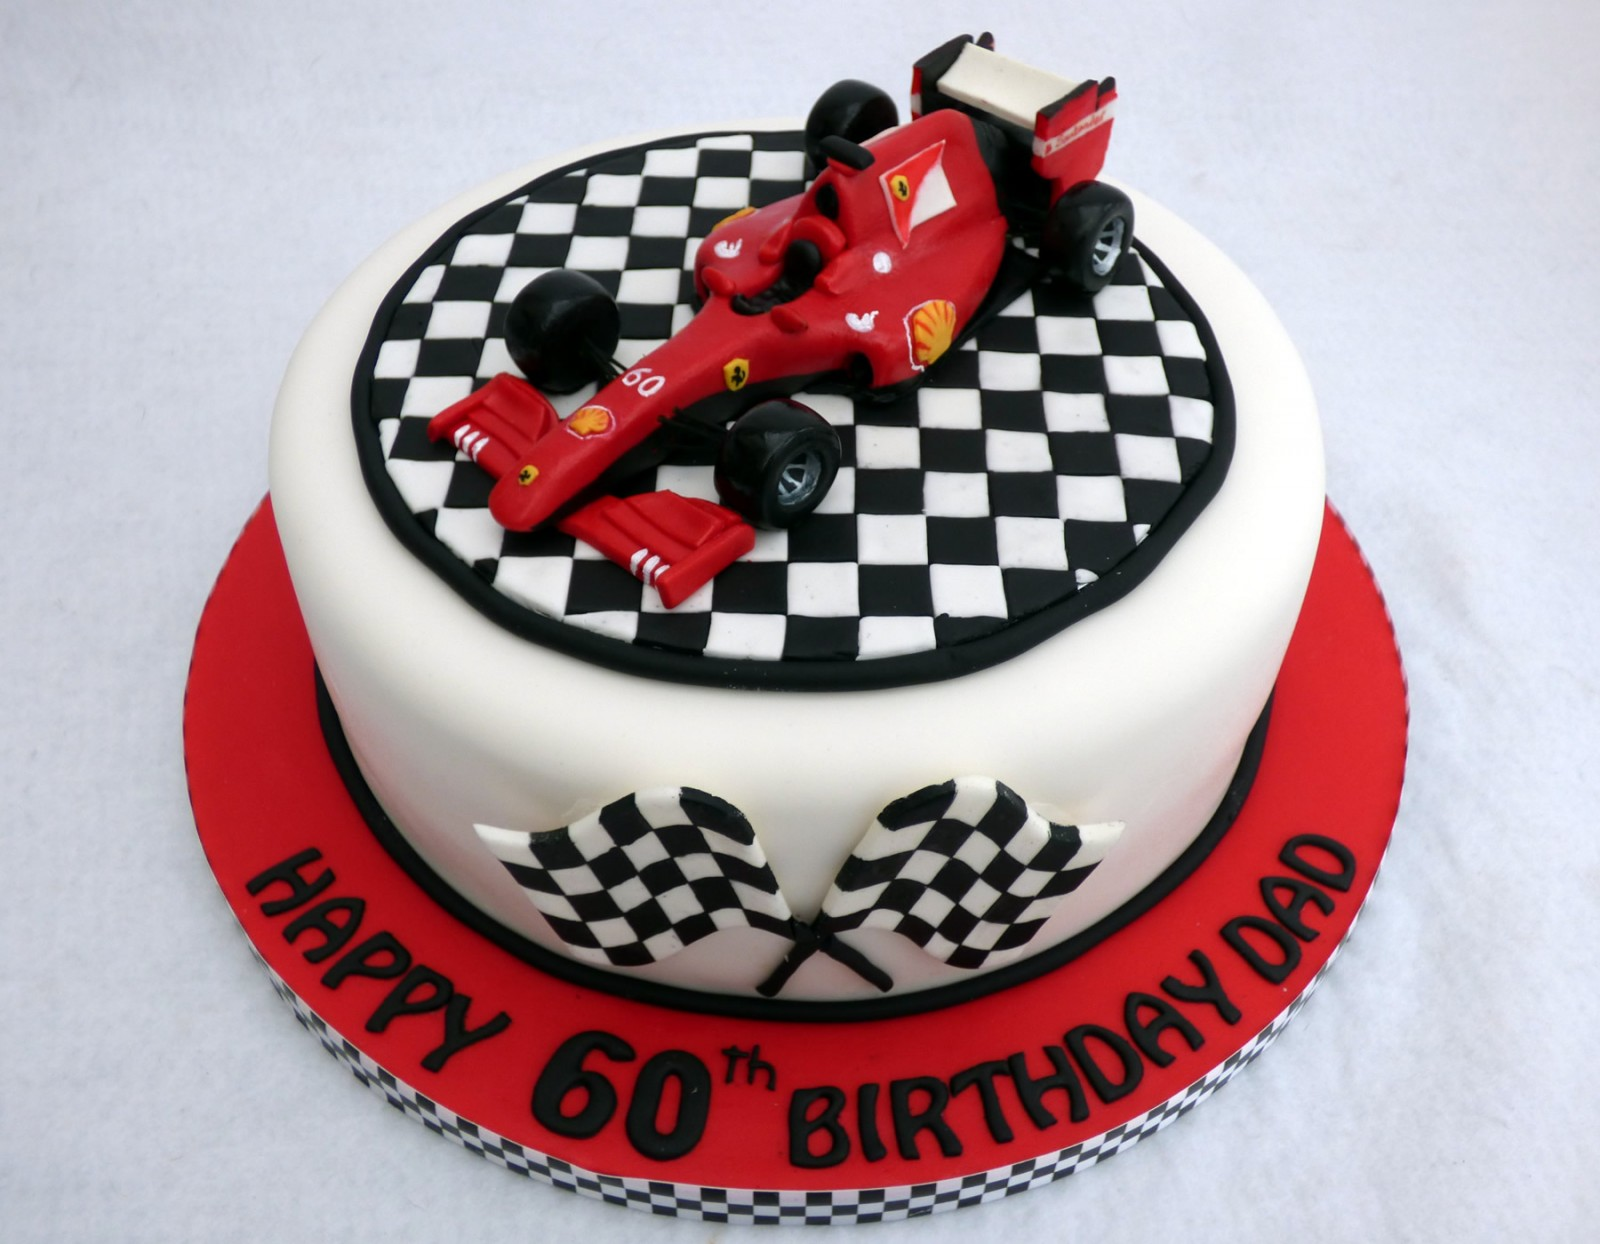 Pleasing Ferrari F1 Racing Car Birthday Cake Topper Susies Cakes Funny Birthday Cards Online Unhofree Goldxyz